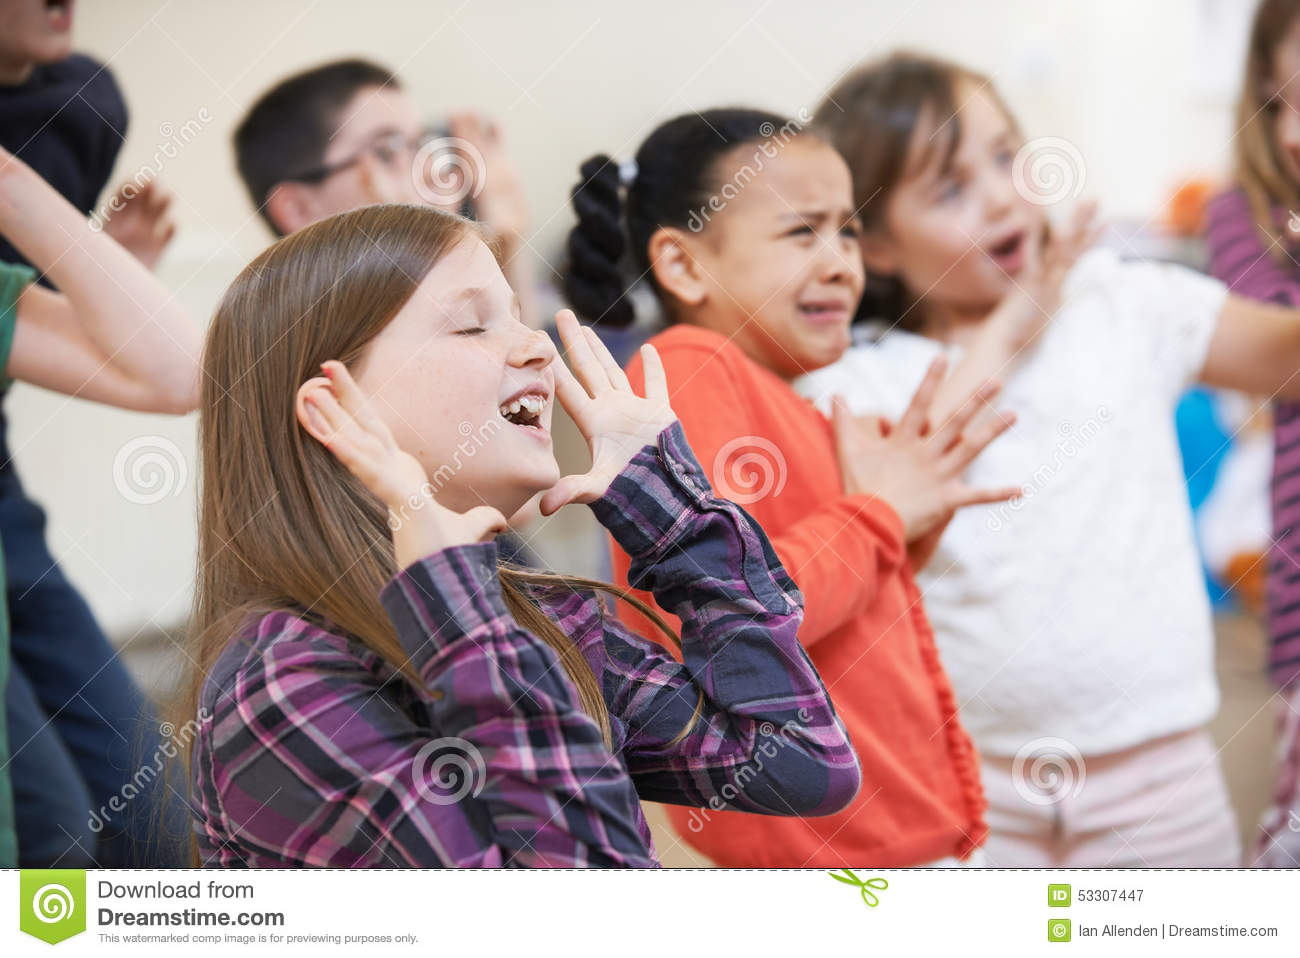 On september 13, 2021 at 11:45 am. Group Of Children Enjoying Drama Class Together Stock Image Image Of Child Creativity 53307447